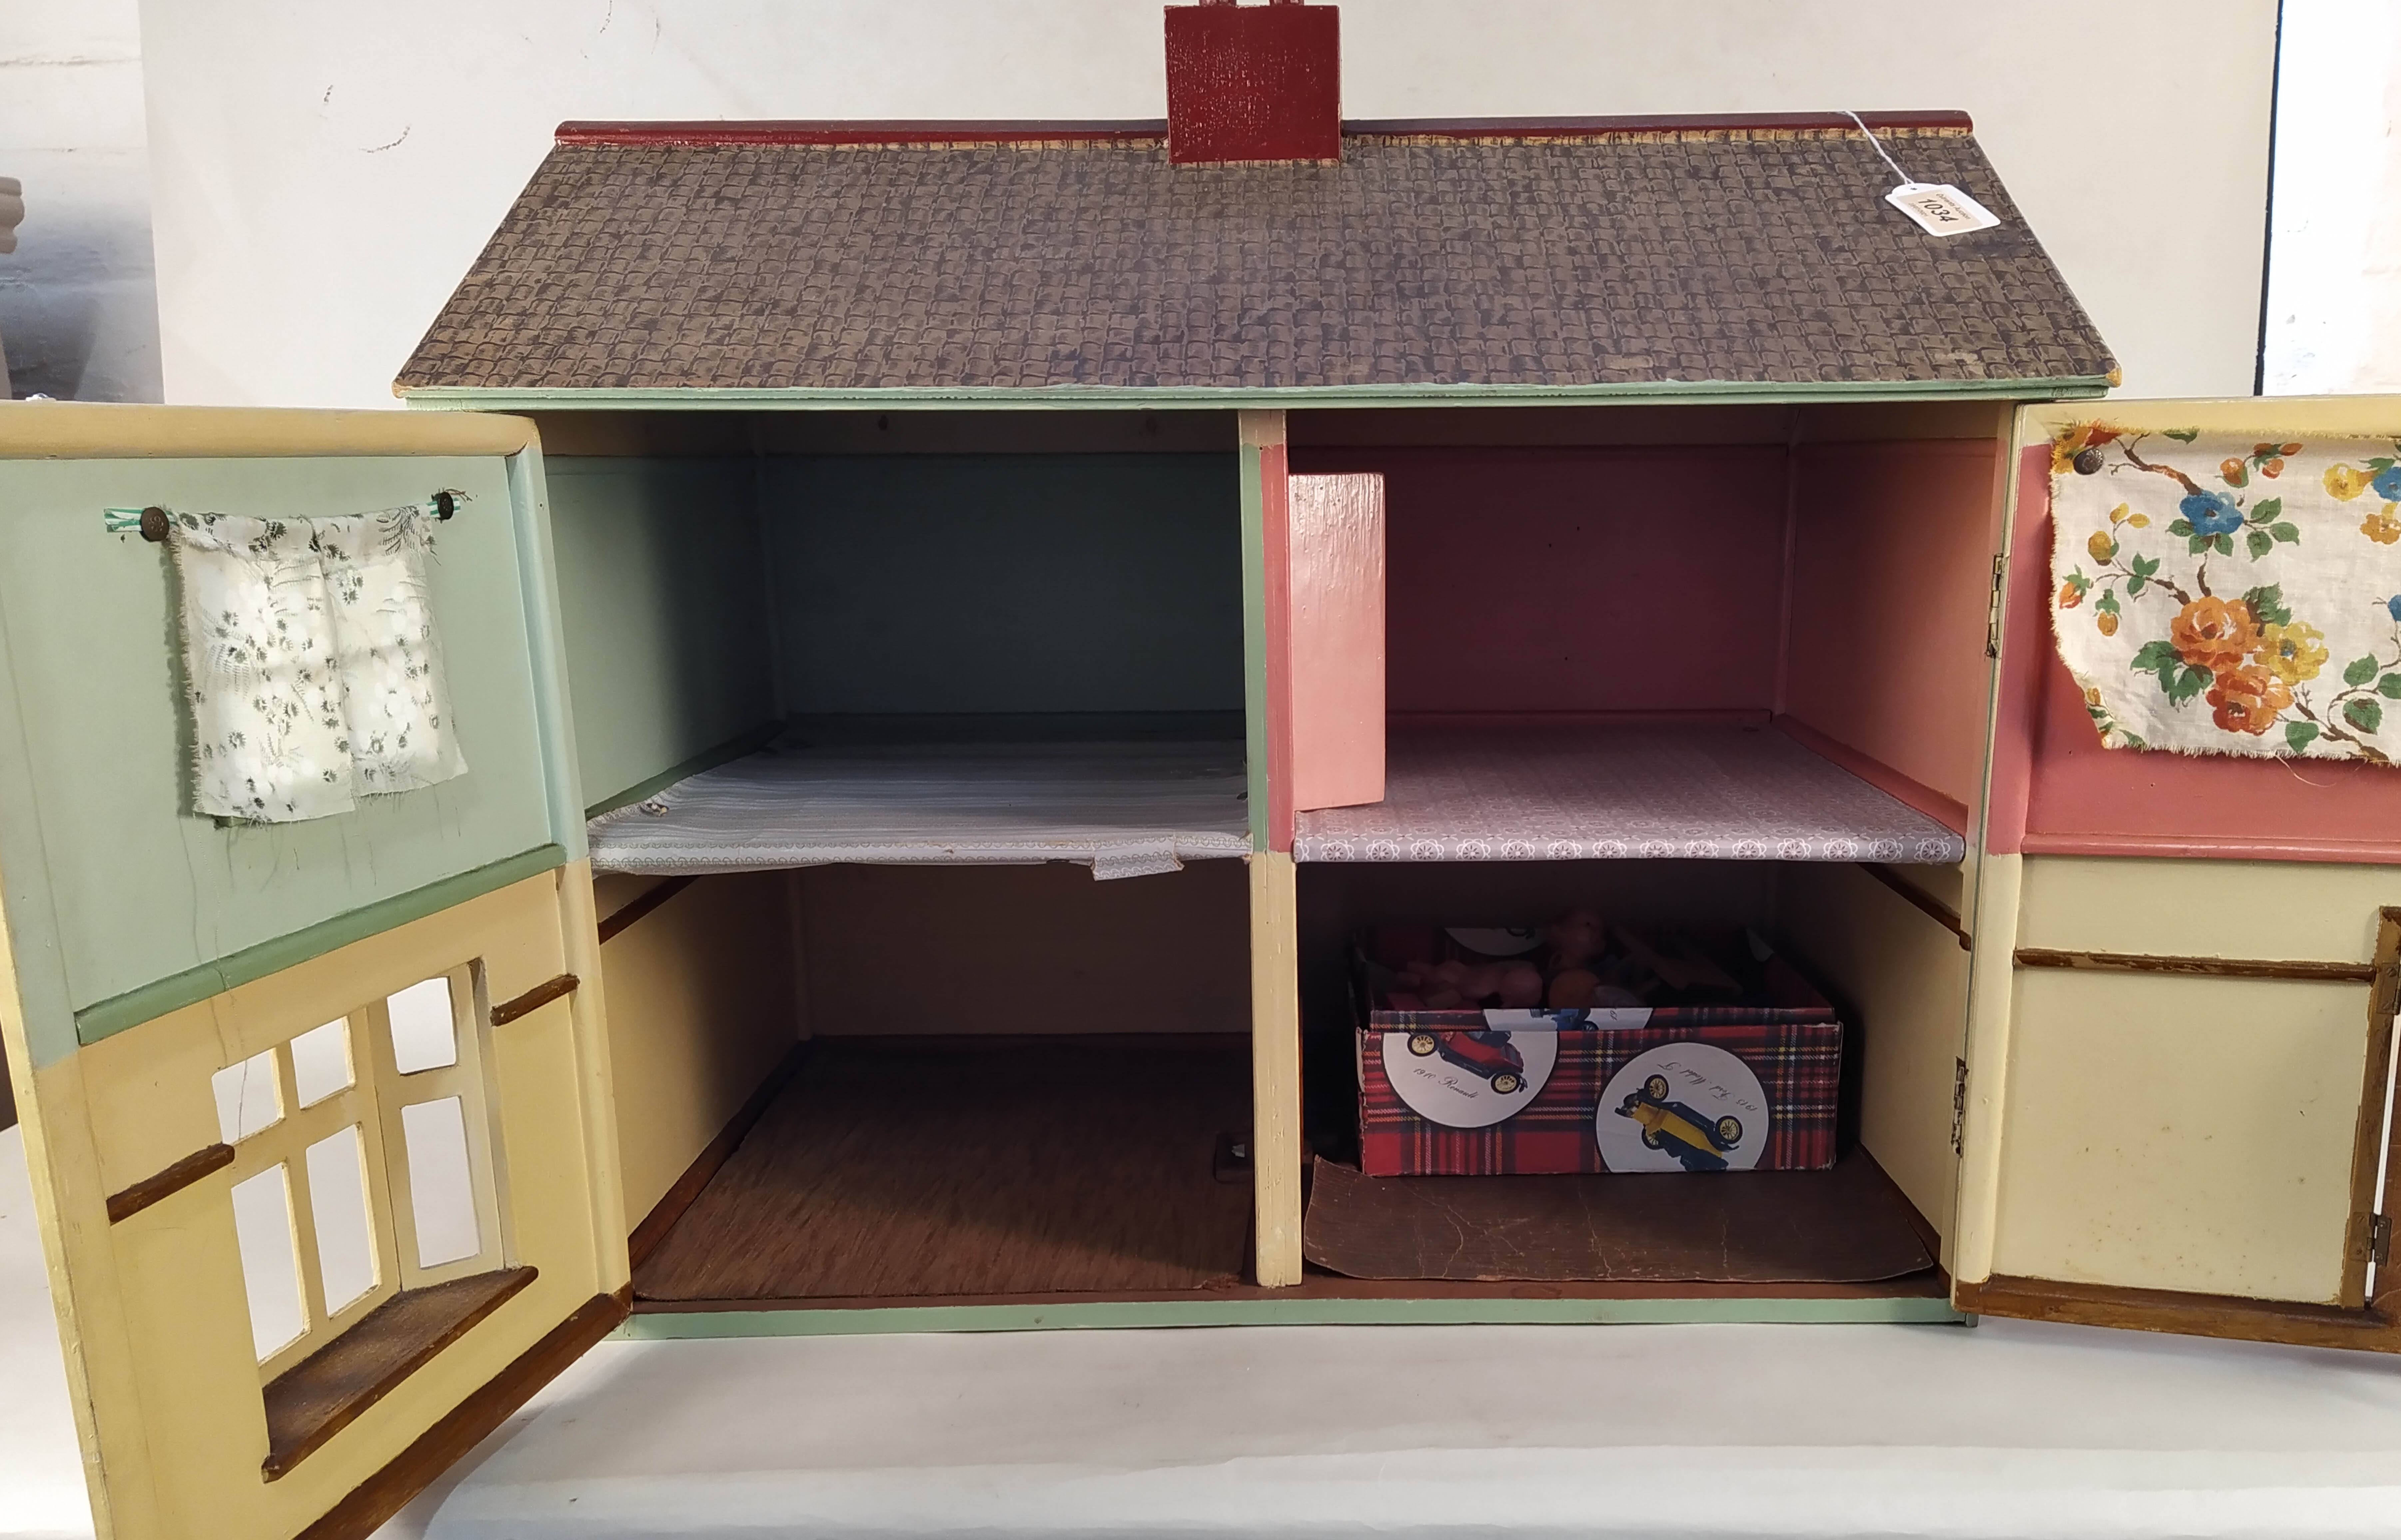 A vintage dolls house plus a tub of dolls house furniture, - Image 2 of 3